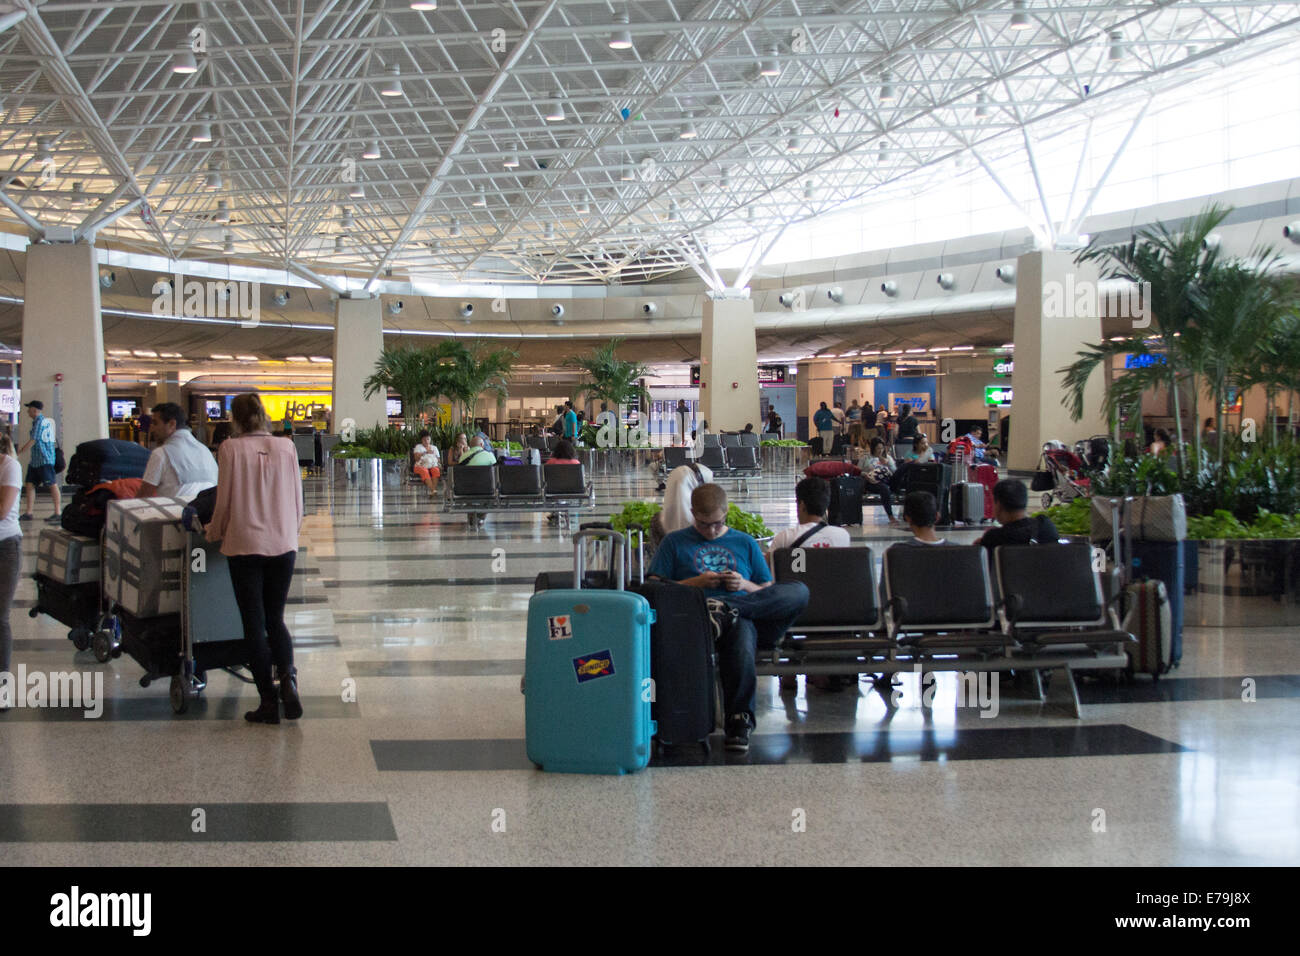 miami airport rental car center stock photo: 73355994 - alamy